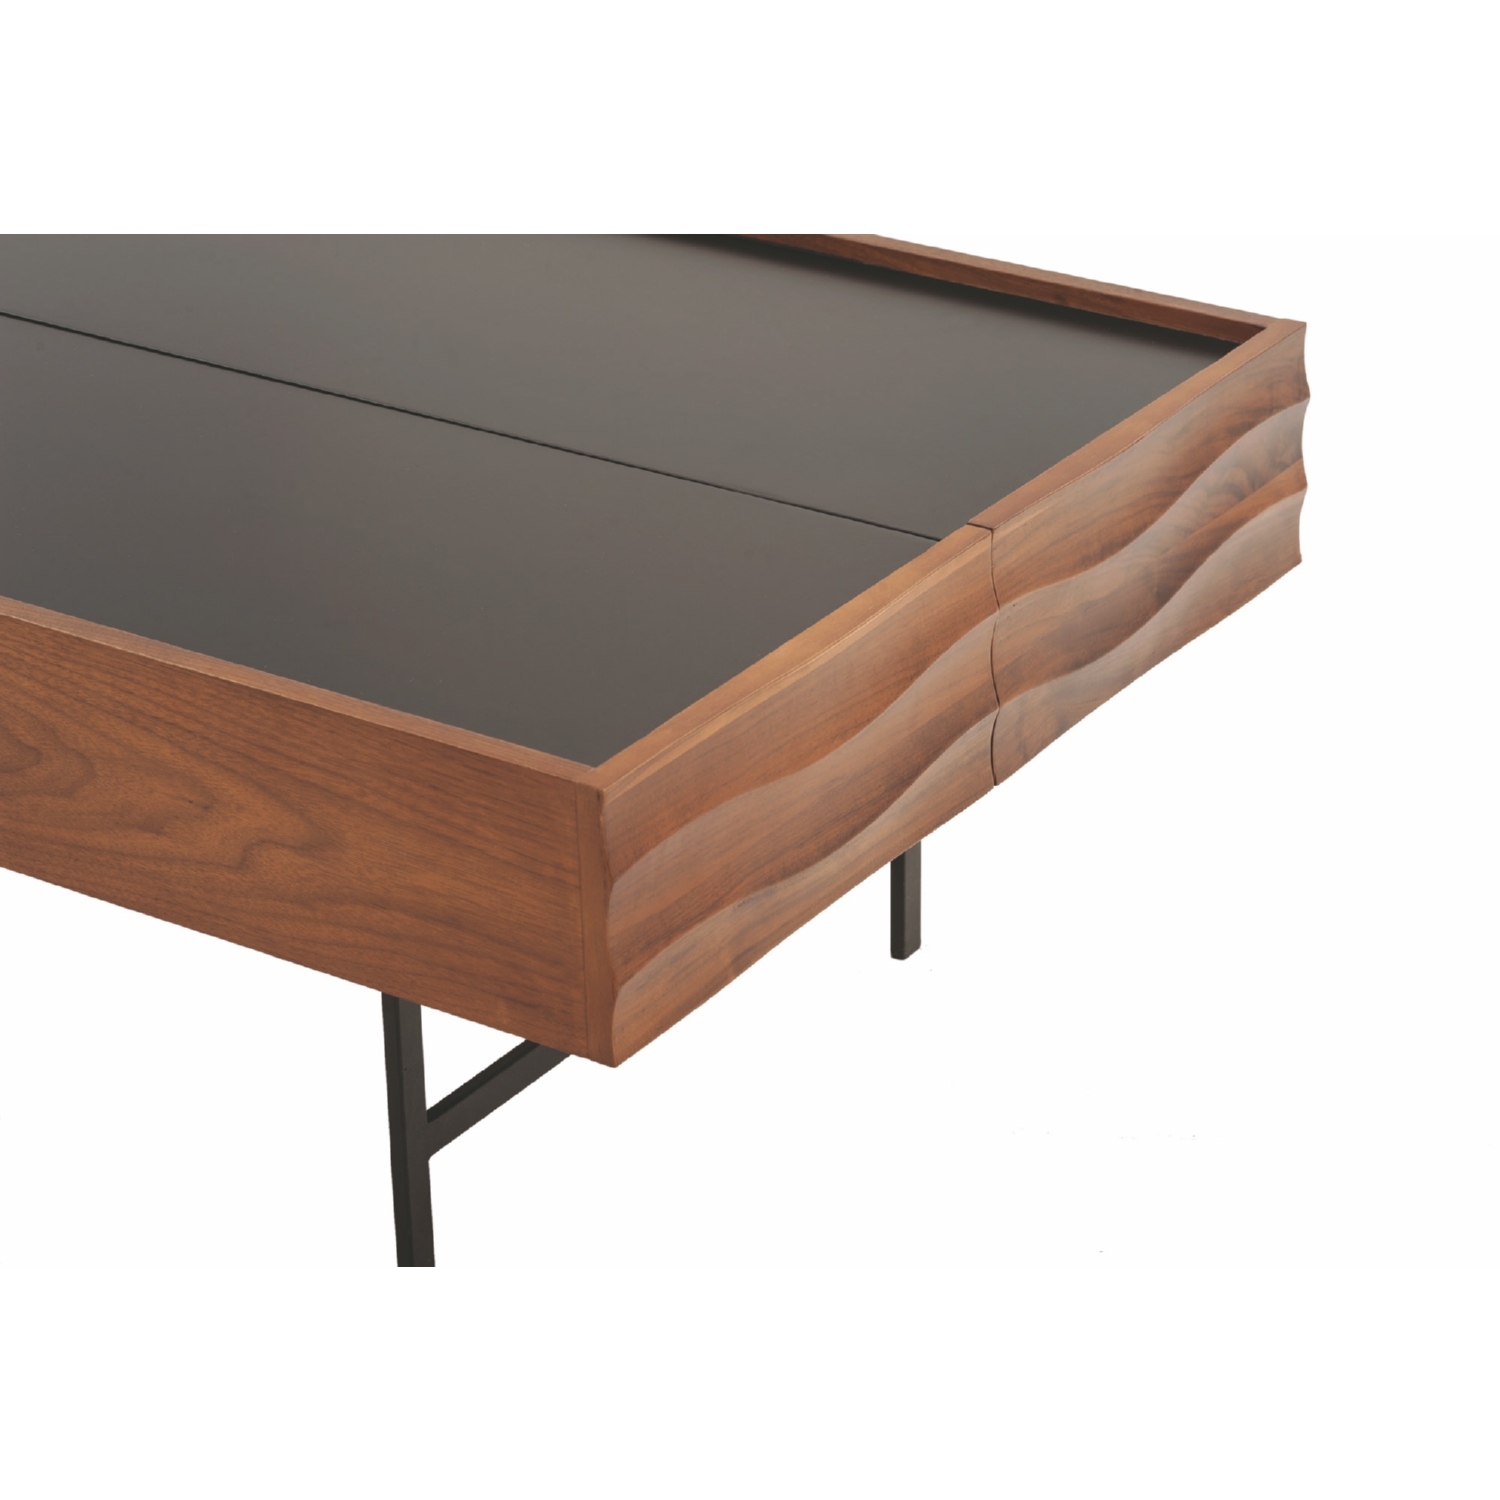 Nuevo Modern Furniture HGPM106 Swell Coffee Table in Black w